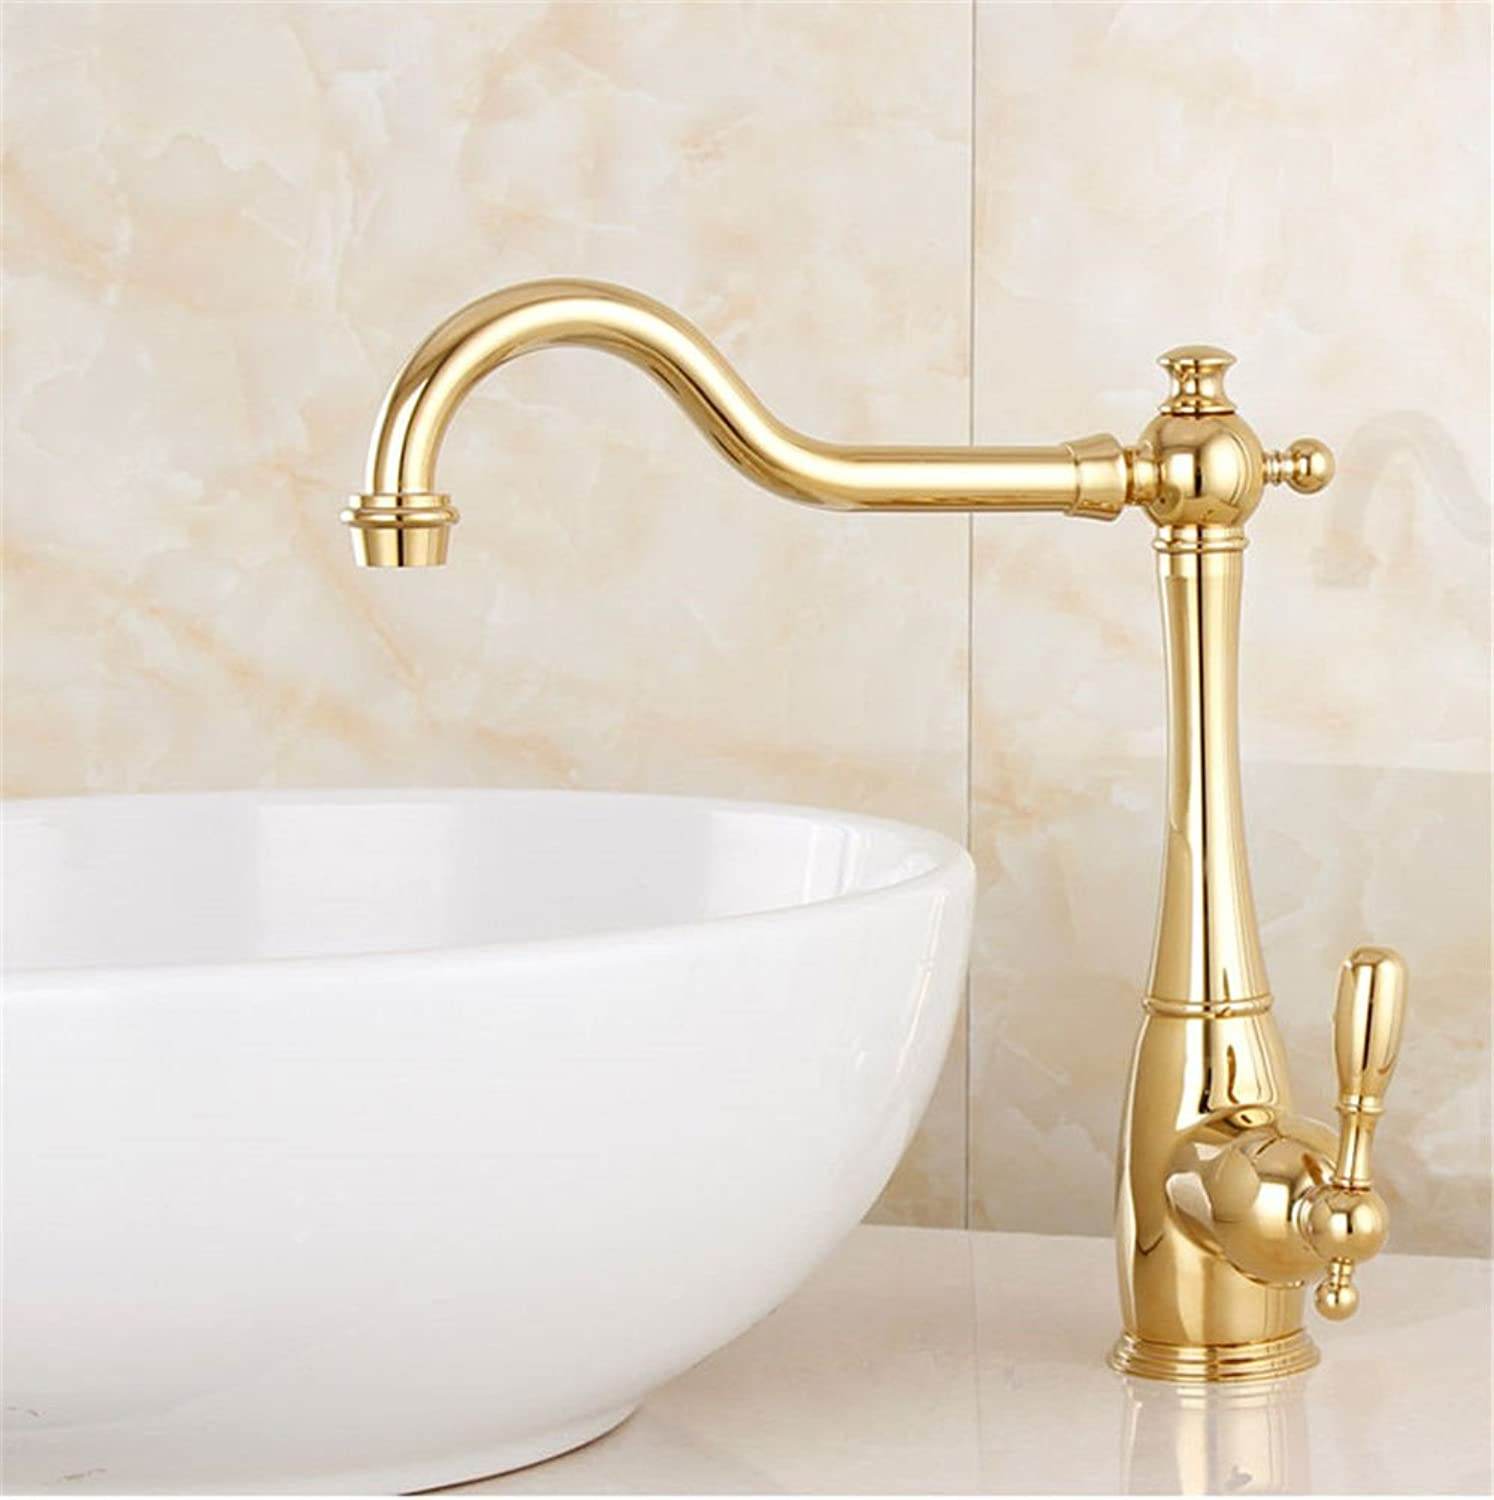 Commercial Single Lever Pull Down Kitchen Sink Faucet Brass Constructed Polished European Style Copper gold Above Counter Basin Basin Hot and Cold Water Faucet Long redating Kitchen Sink Faucet